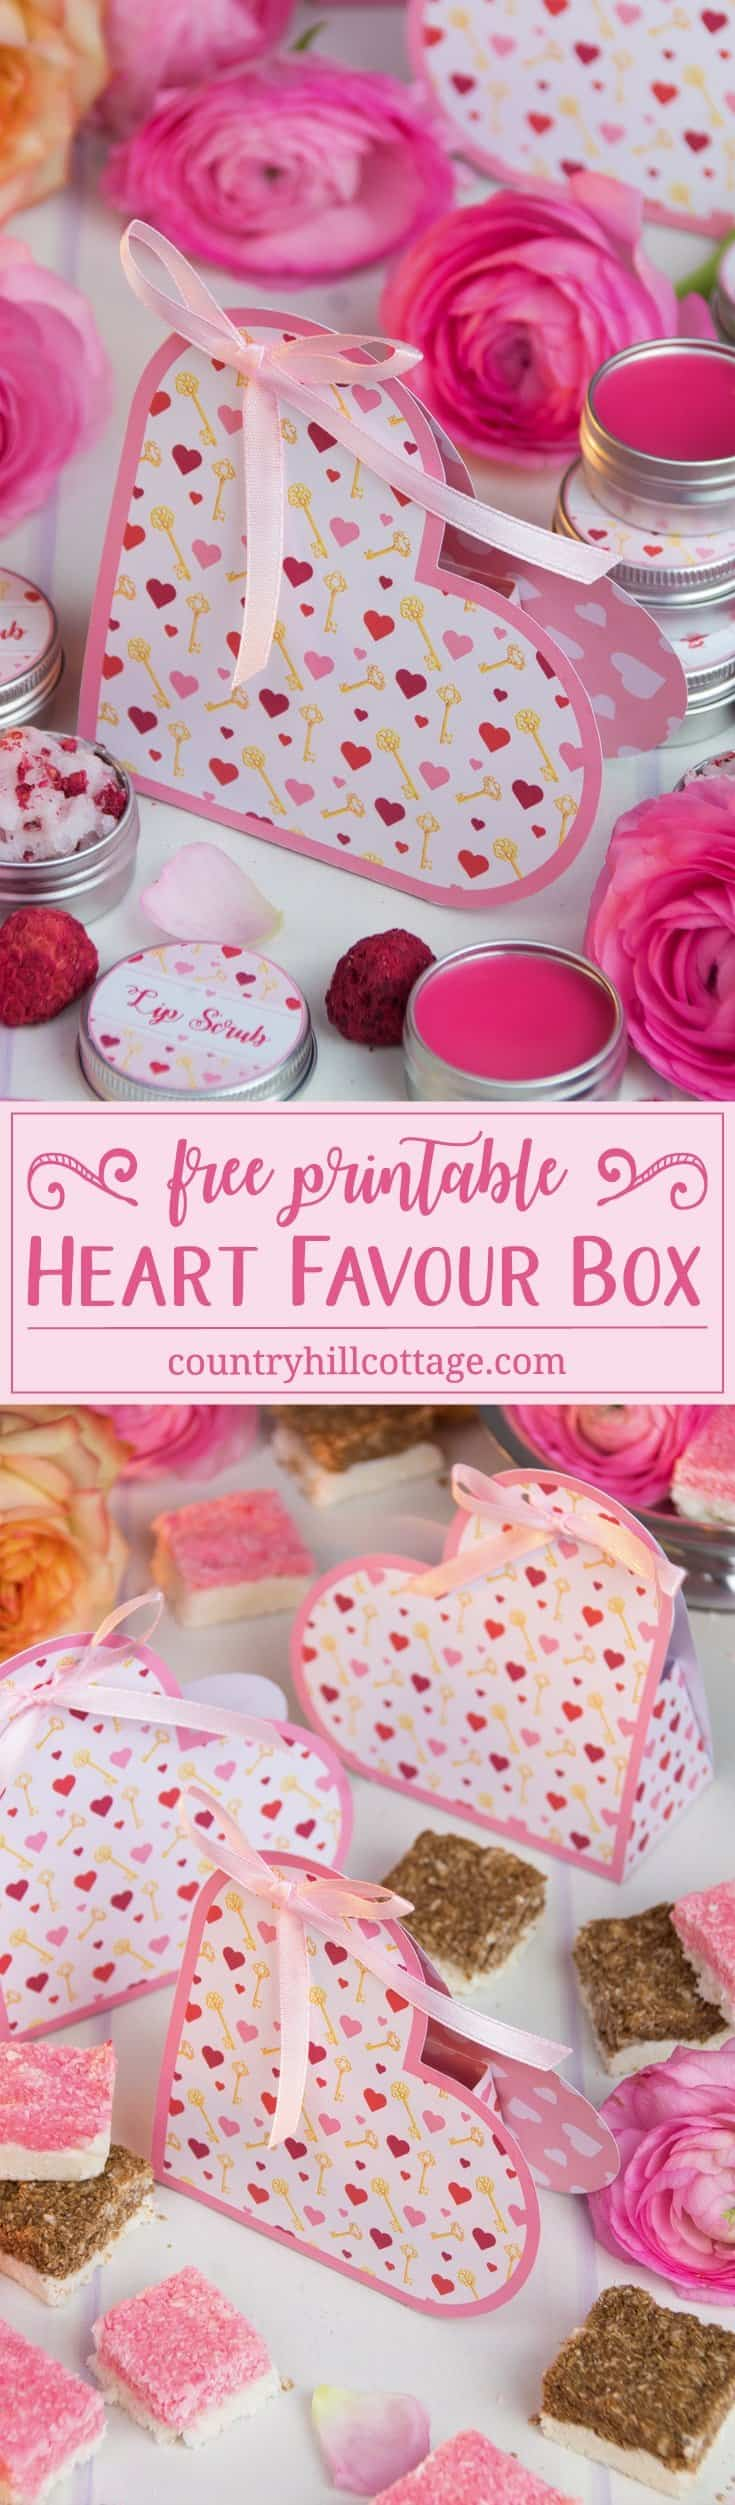 Our printable heart favour boxes make a pretty wedding or party favours and are the perfect little gift to surprise someone special on Valentine's Day. Download pretty printables to package and gift treats in style! #ValentinesDay #printable #freebie | countryhillcottage.com